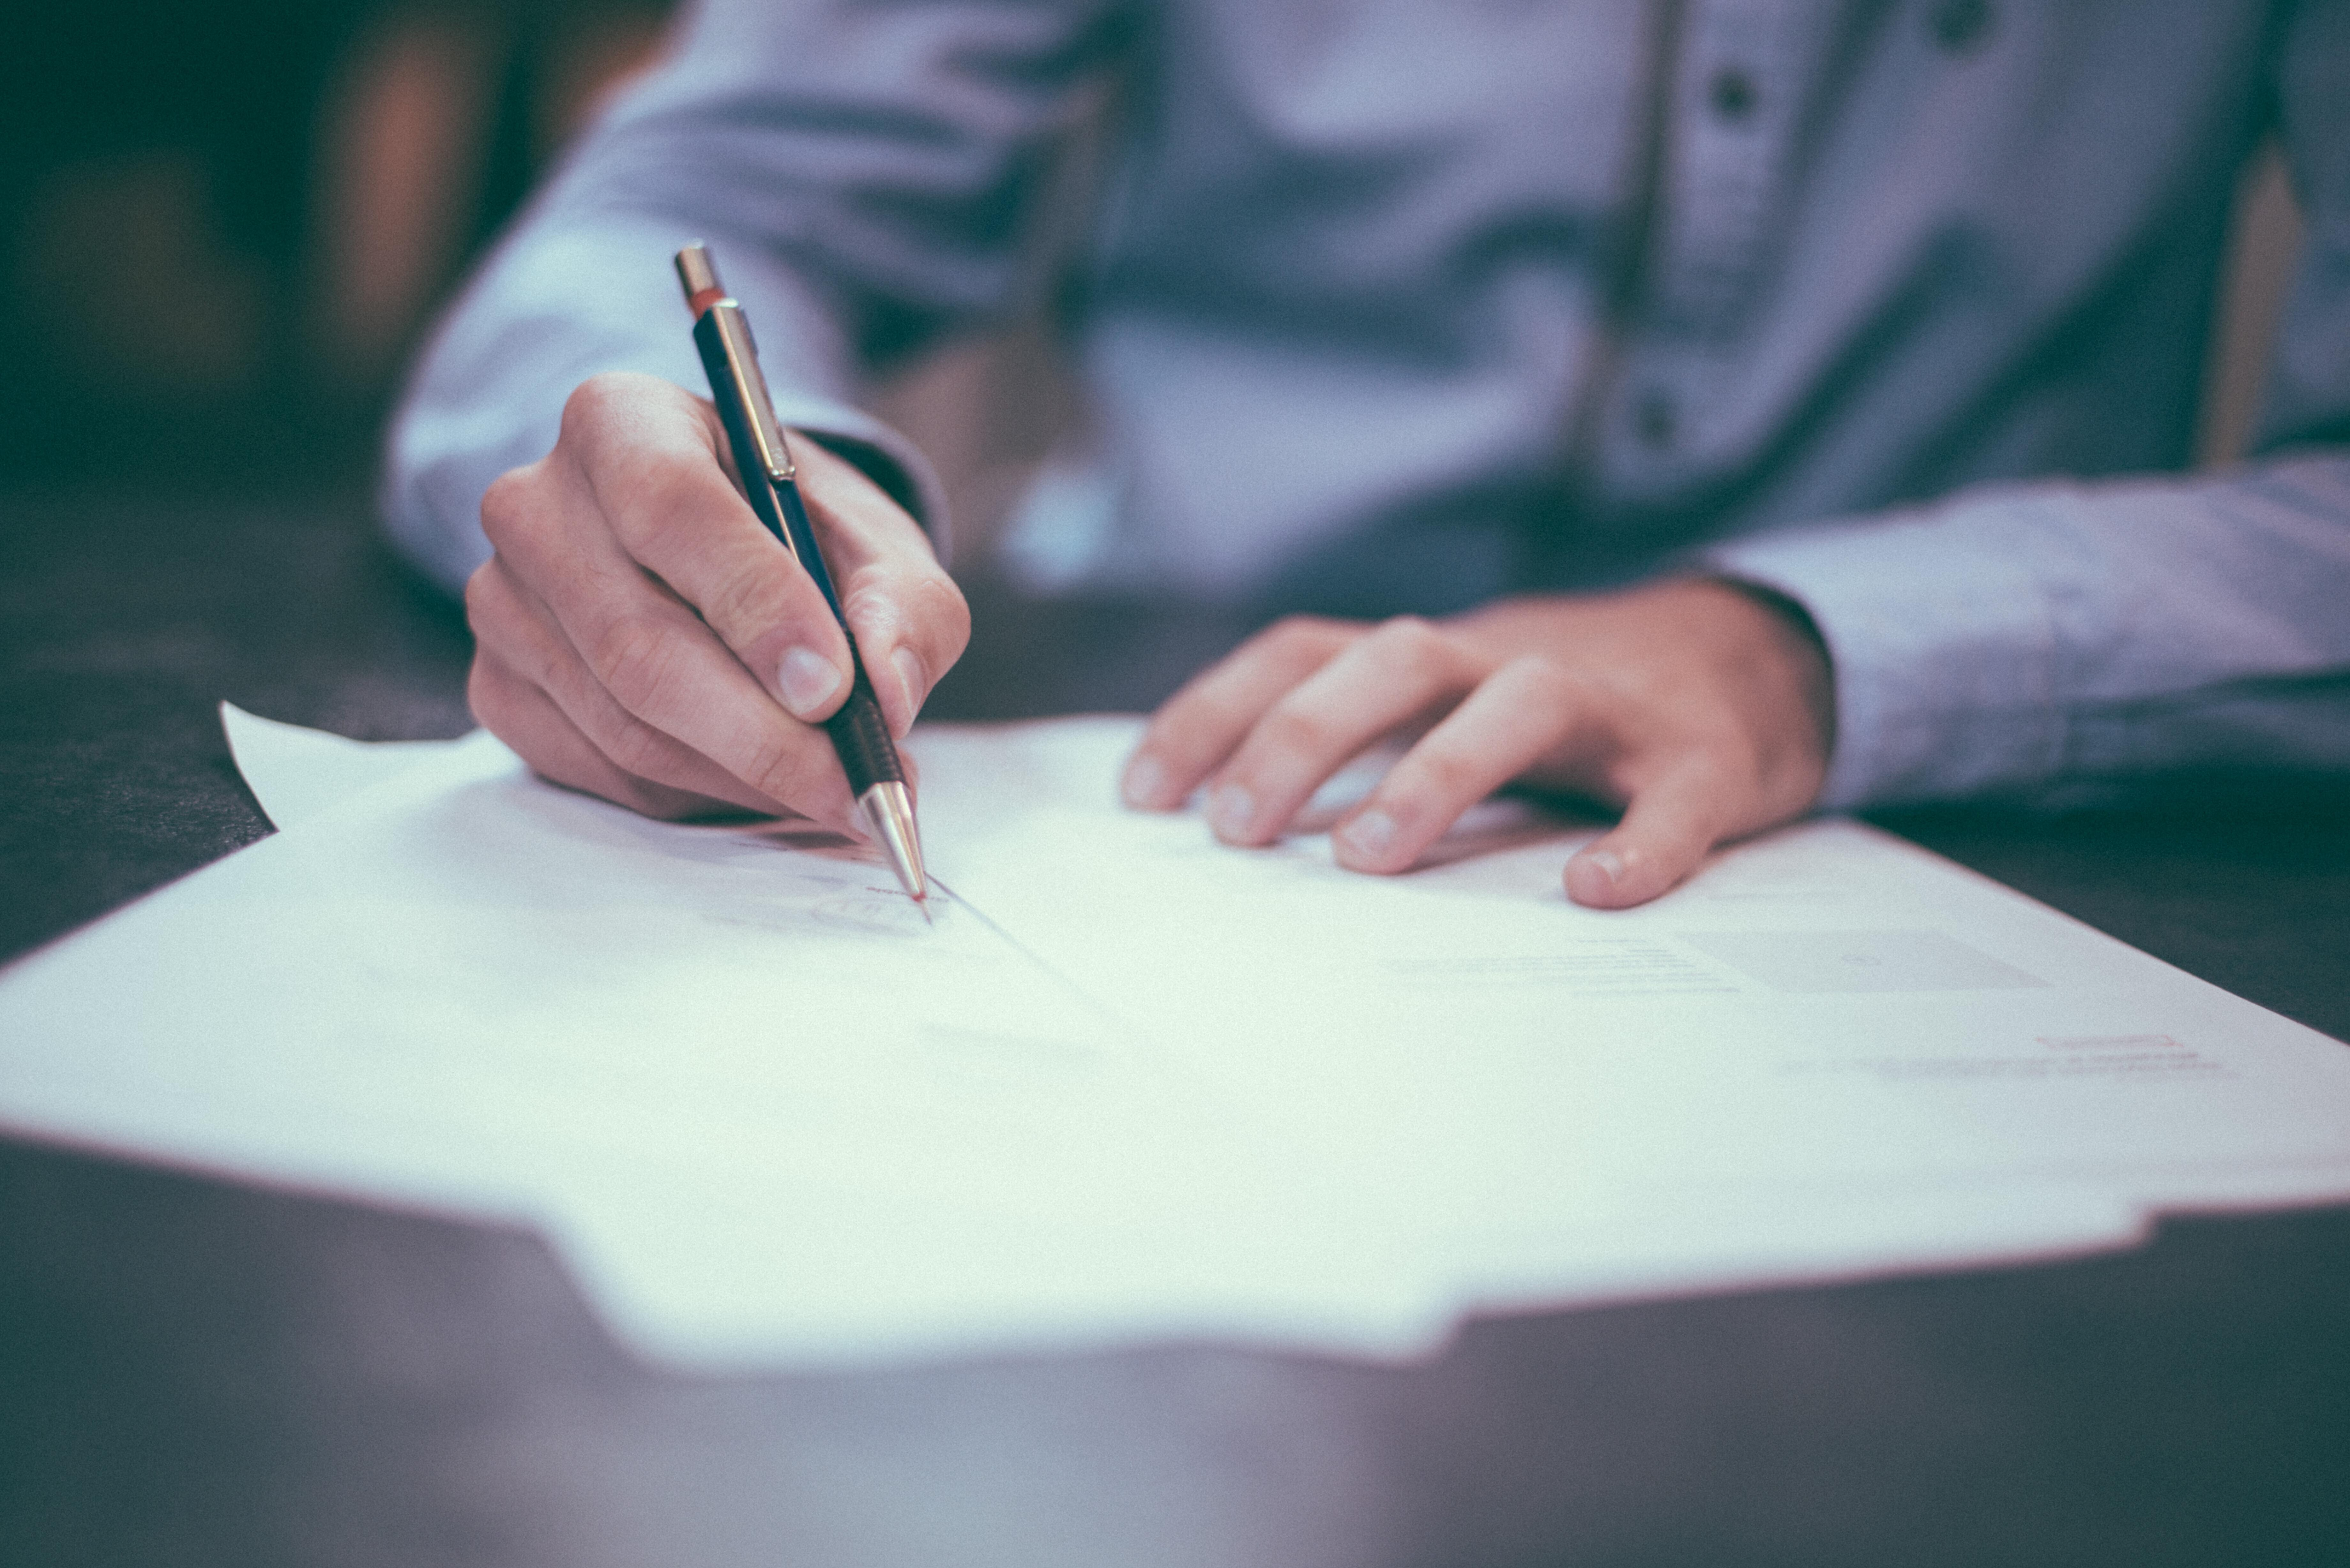 Probationary periods versus minimum employment periods – what's the difference?